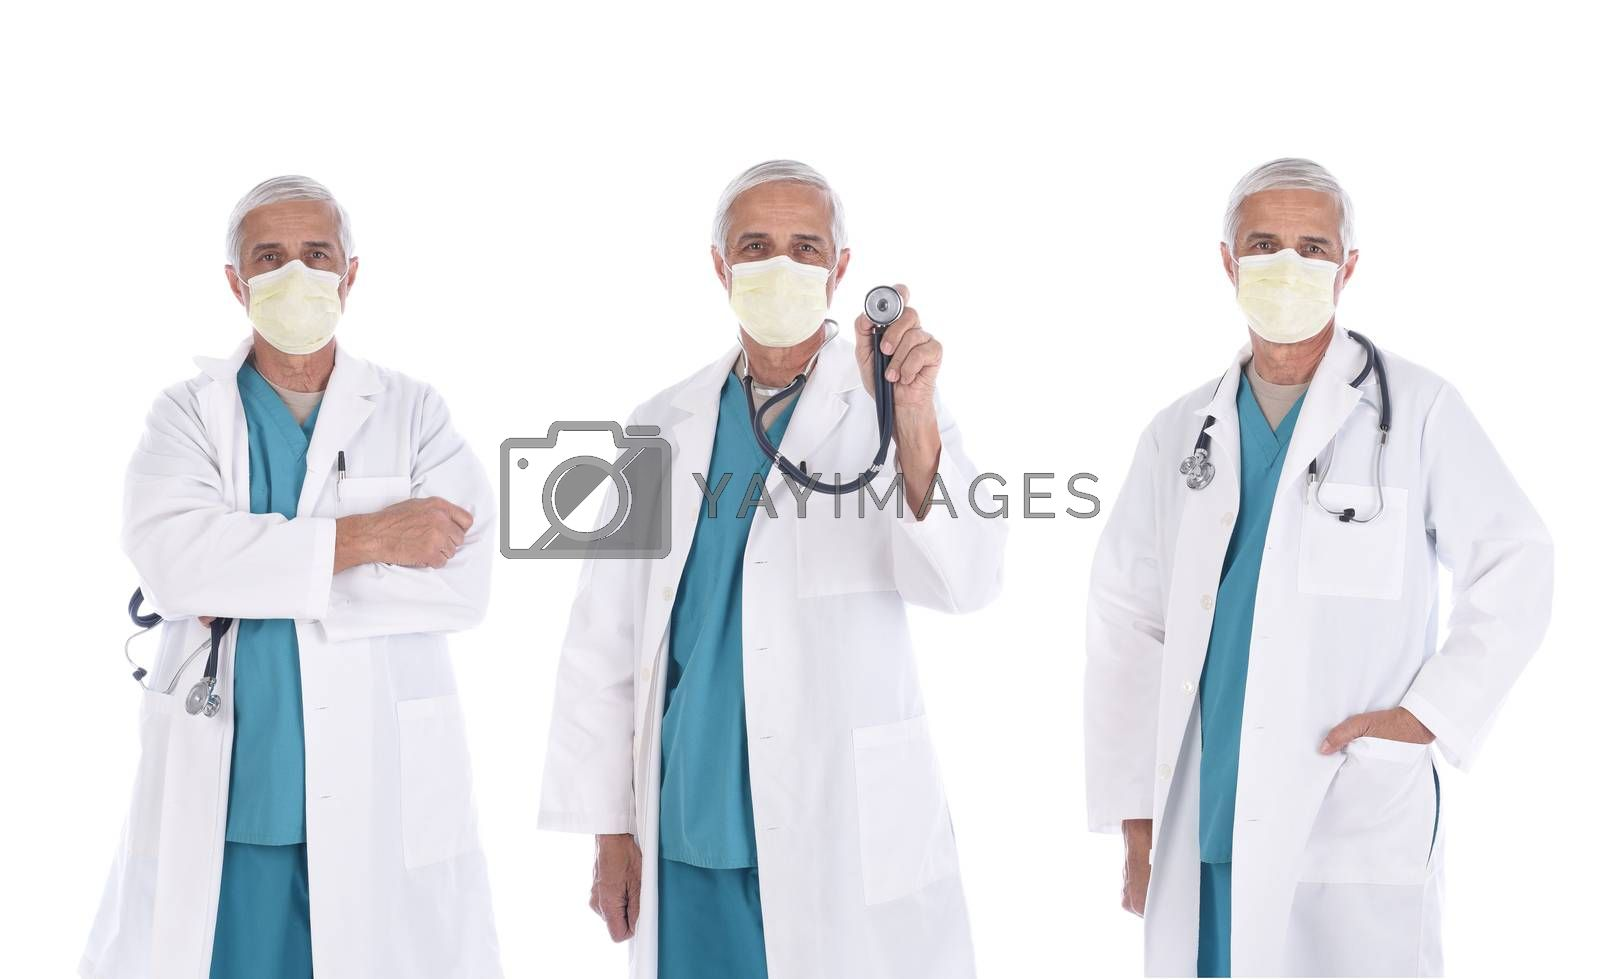 Three views of a mature doctor wearing a lab coat, surgical scrubs, and mask in different poses, isolated on white.